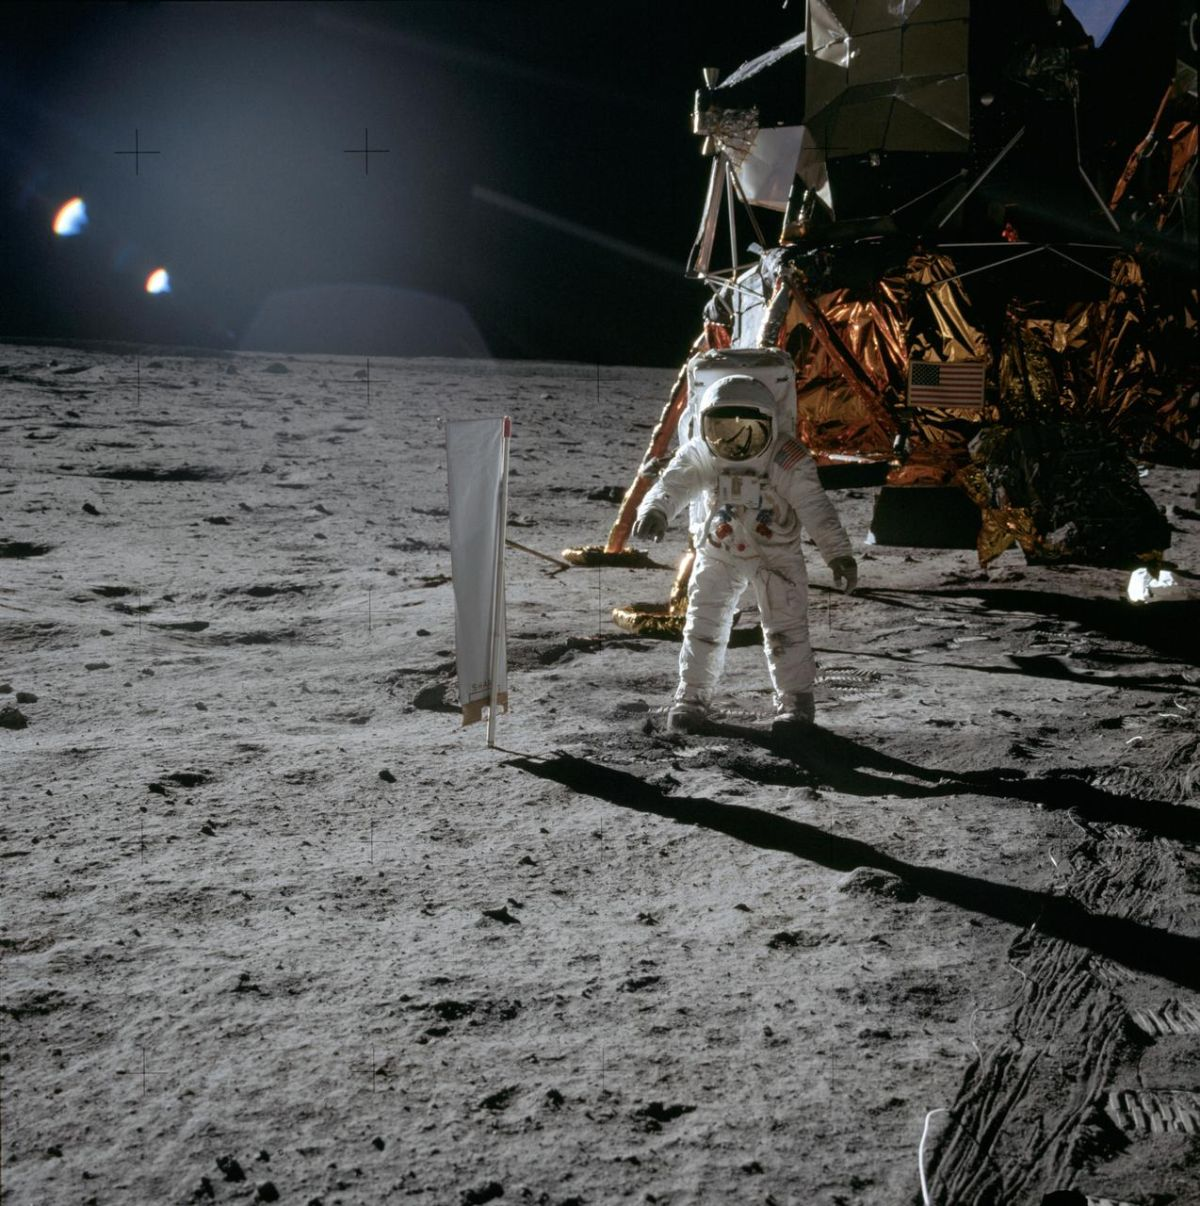 '8 Days: To the Moon and Back' Shows Apollo 11 Milestones